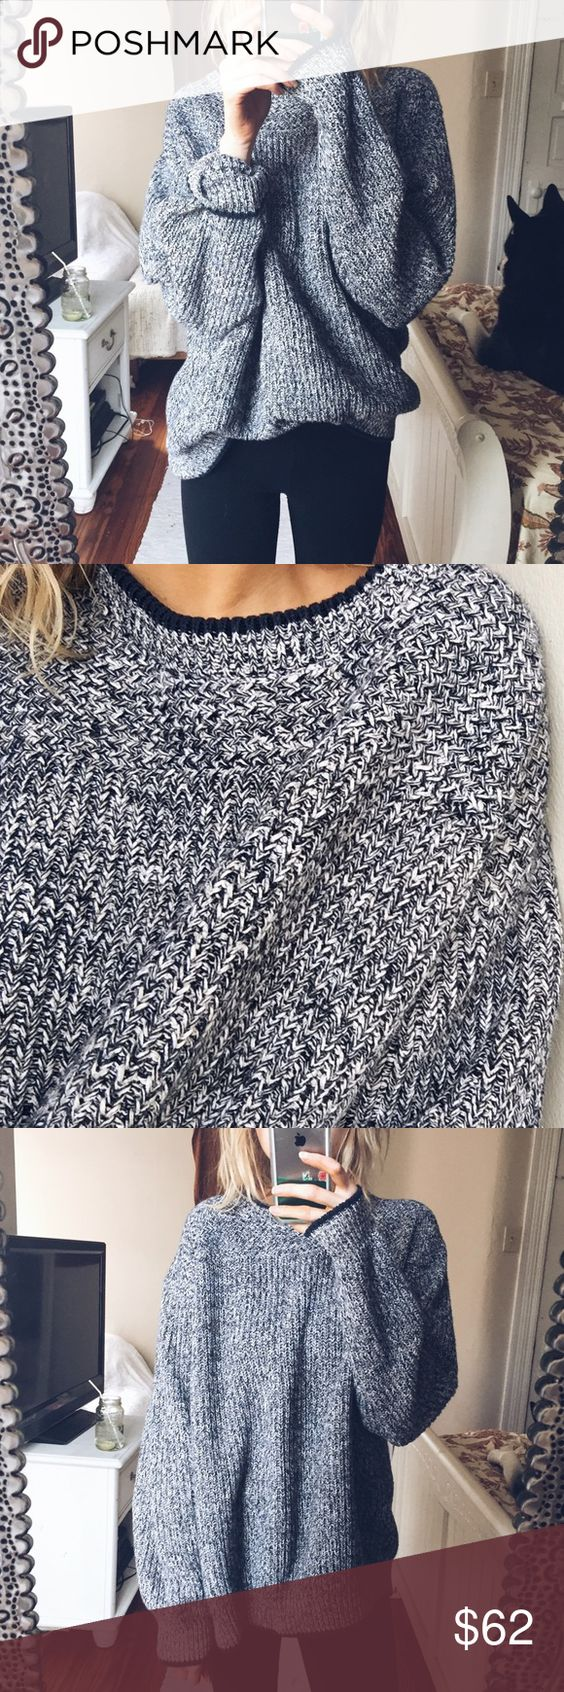 The hiker Beautifully woven, bold necklined sweater in marled and durable fibers. Perfect for a mountain hike or tucked in a casual outfit. A truly solid piece! Given its length this would be best for gals 5'4 + under. Max hold is 2 days. All prices are negotiable! Gypsy Daze Sweaters Crew & Scoop Necks